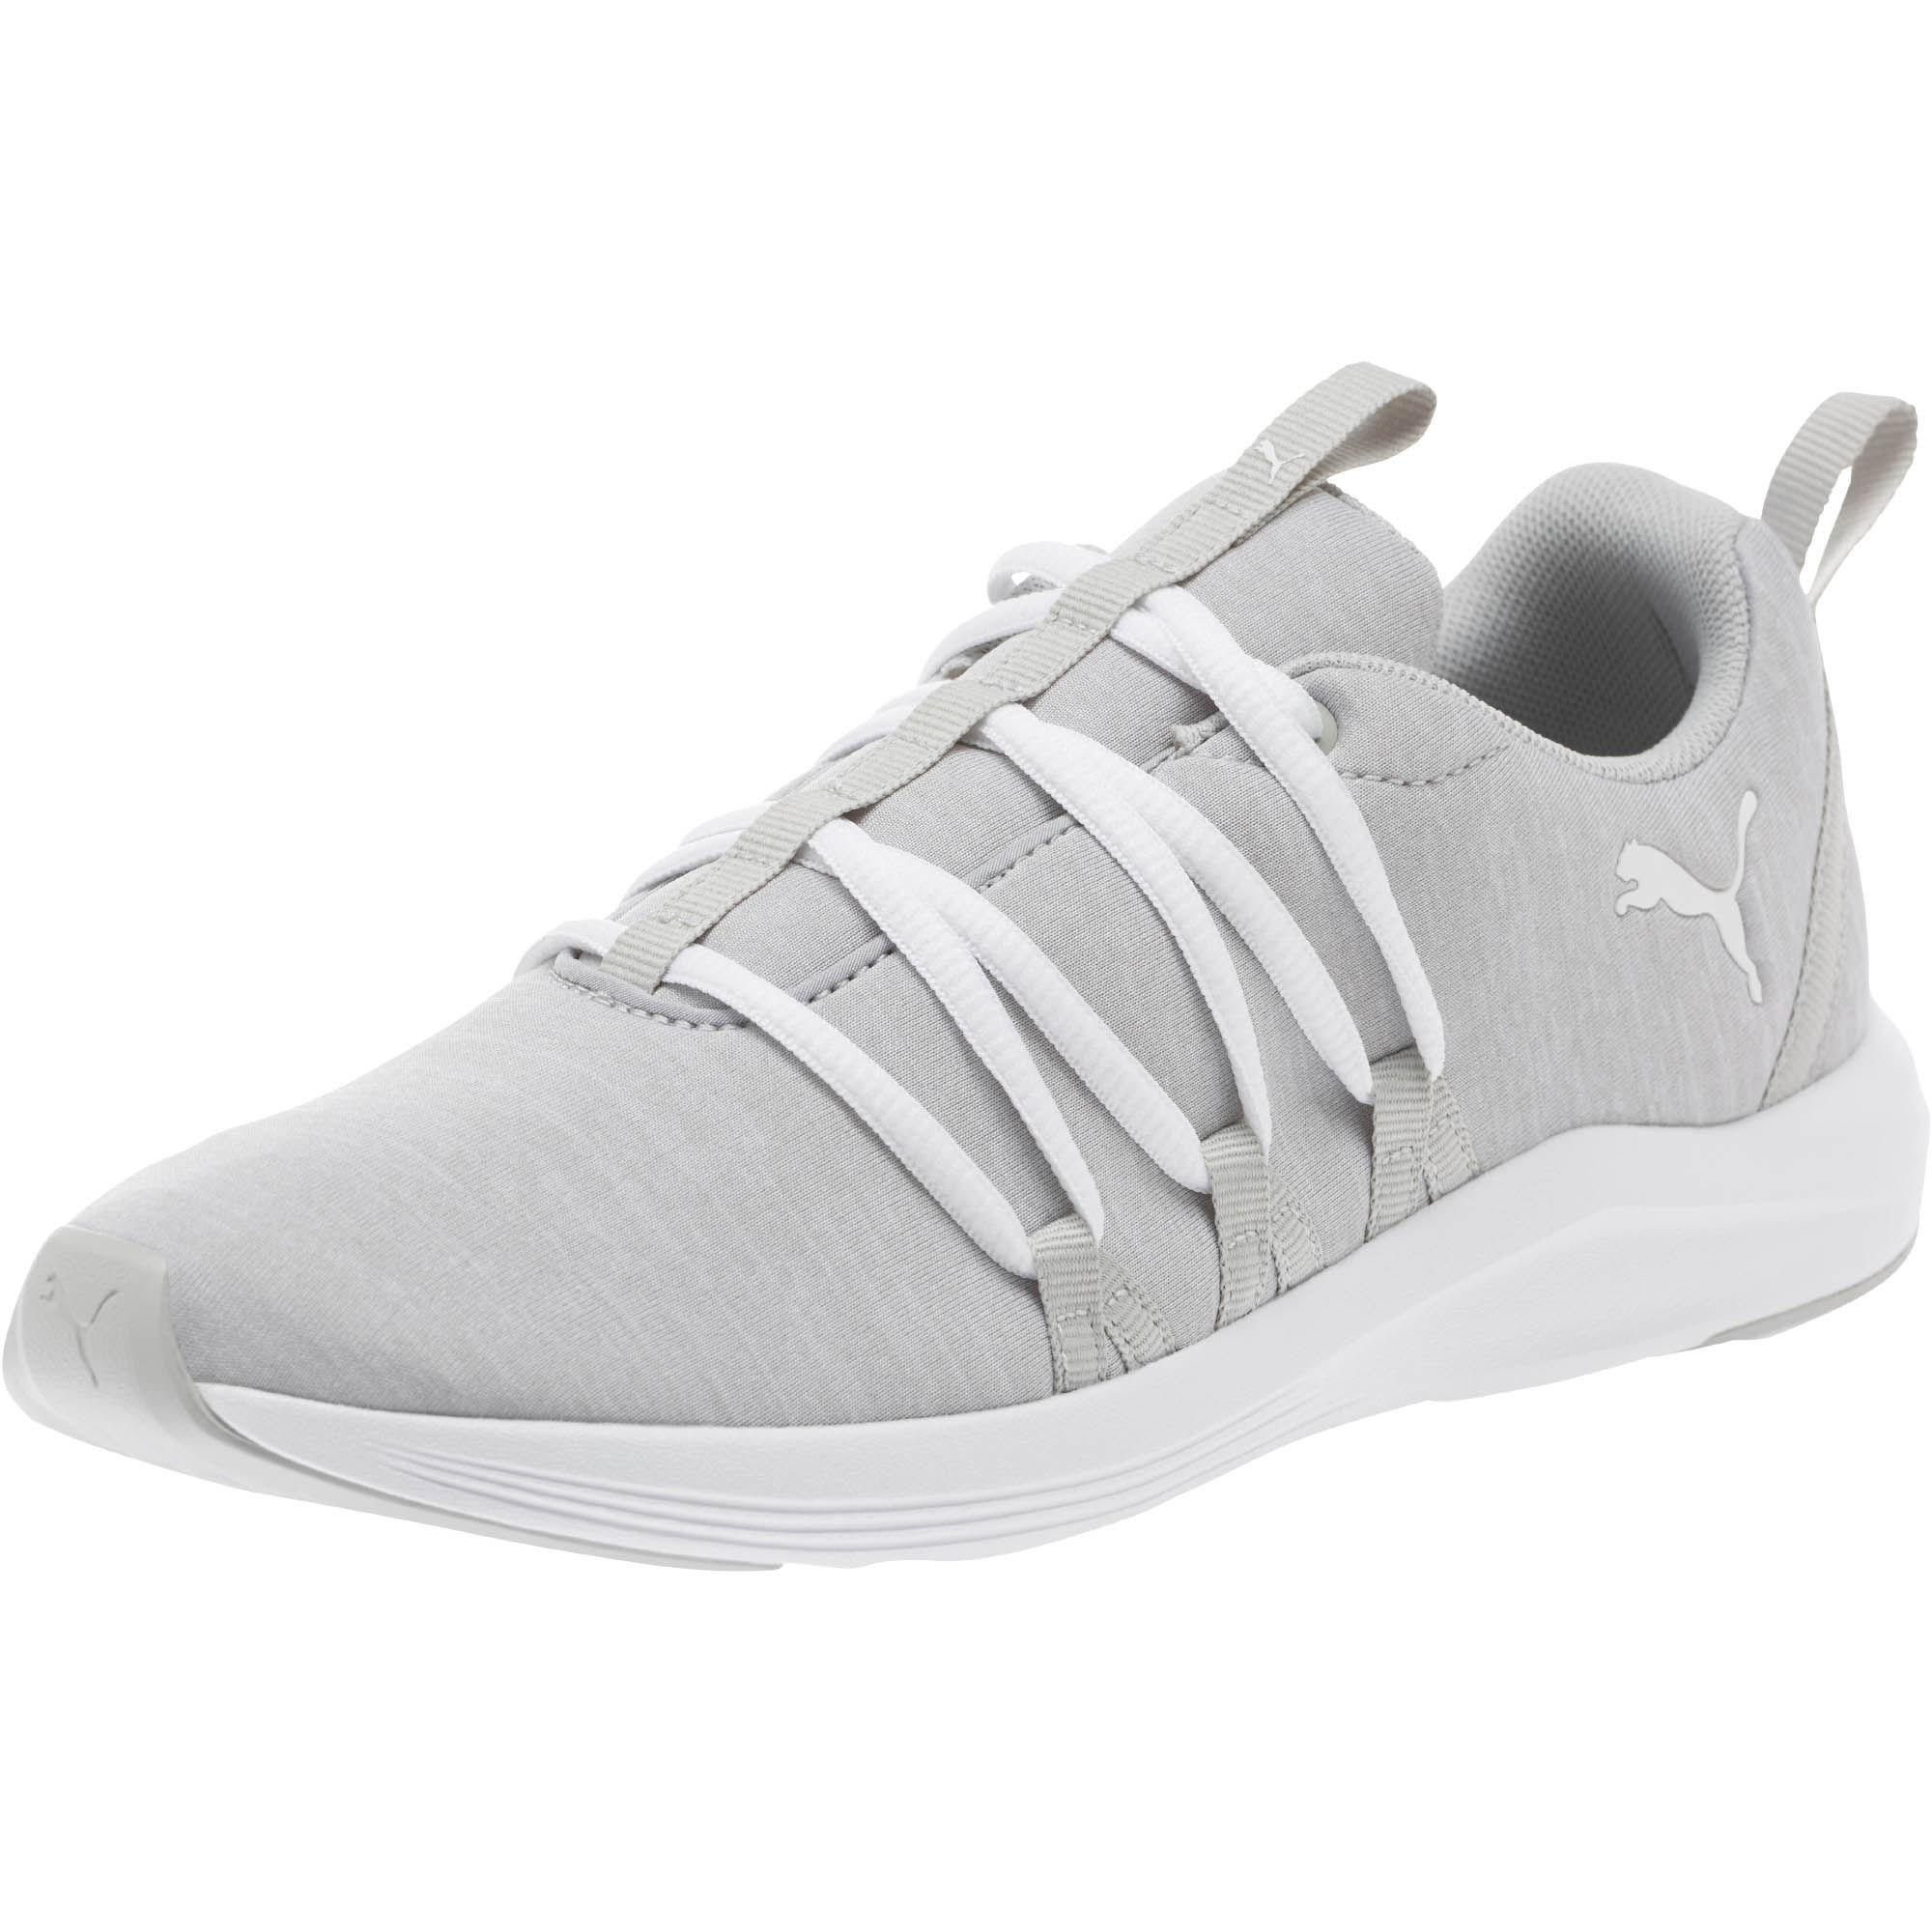 Lyst - PUMA Prowl Alt Heather Women s Training Shoes in Gray af168cfd6